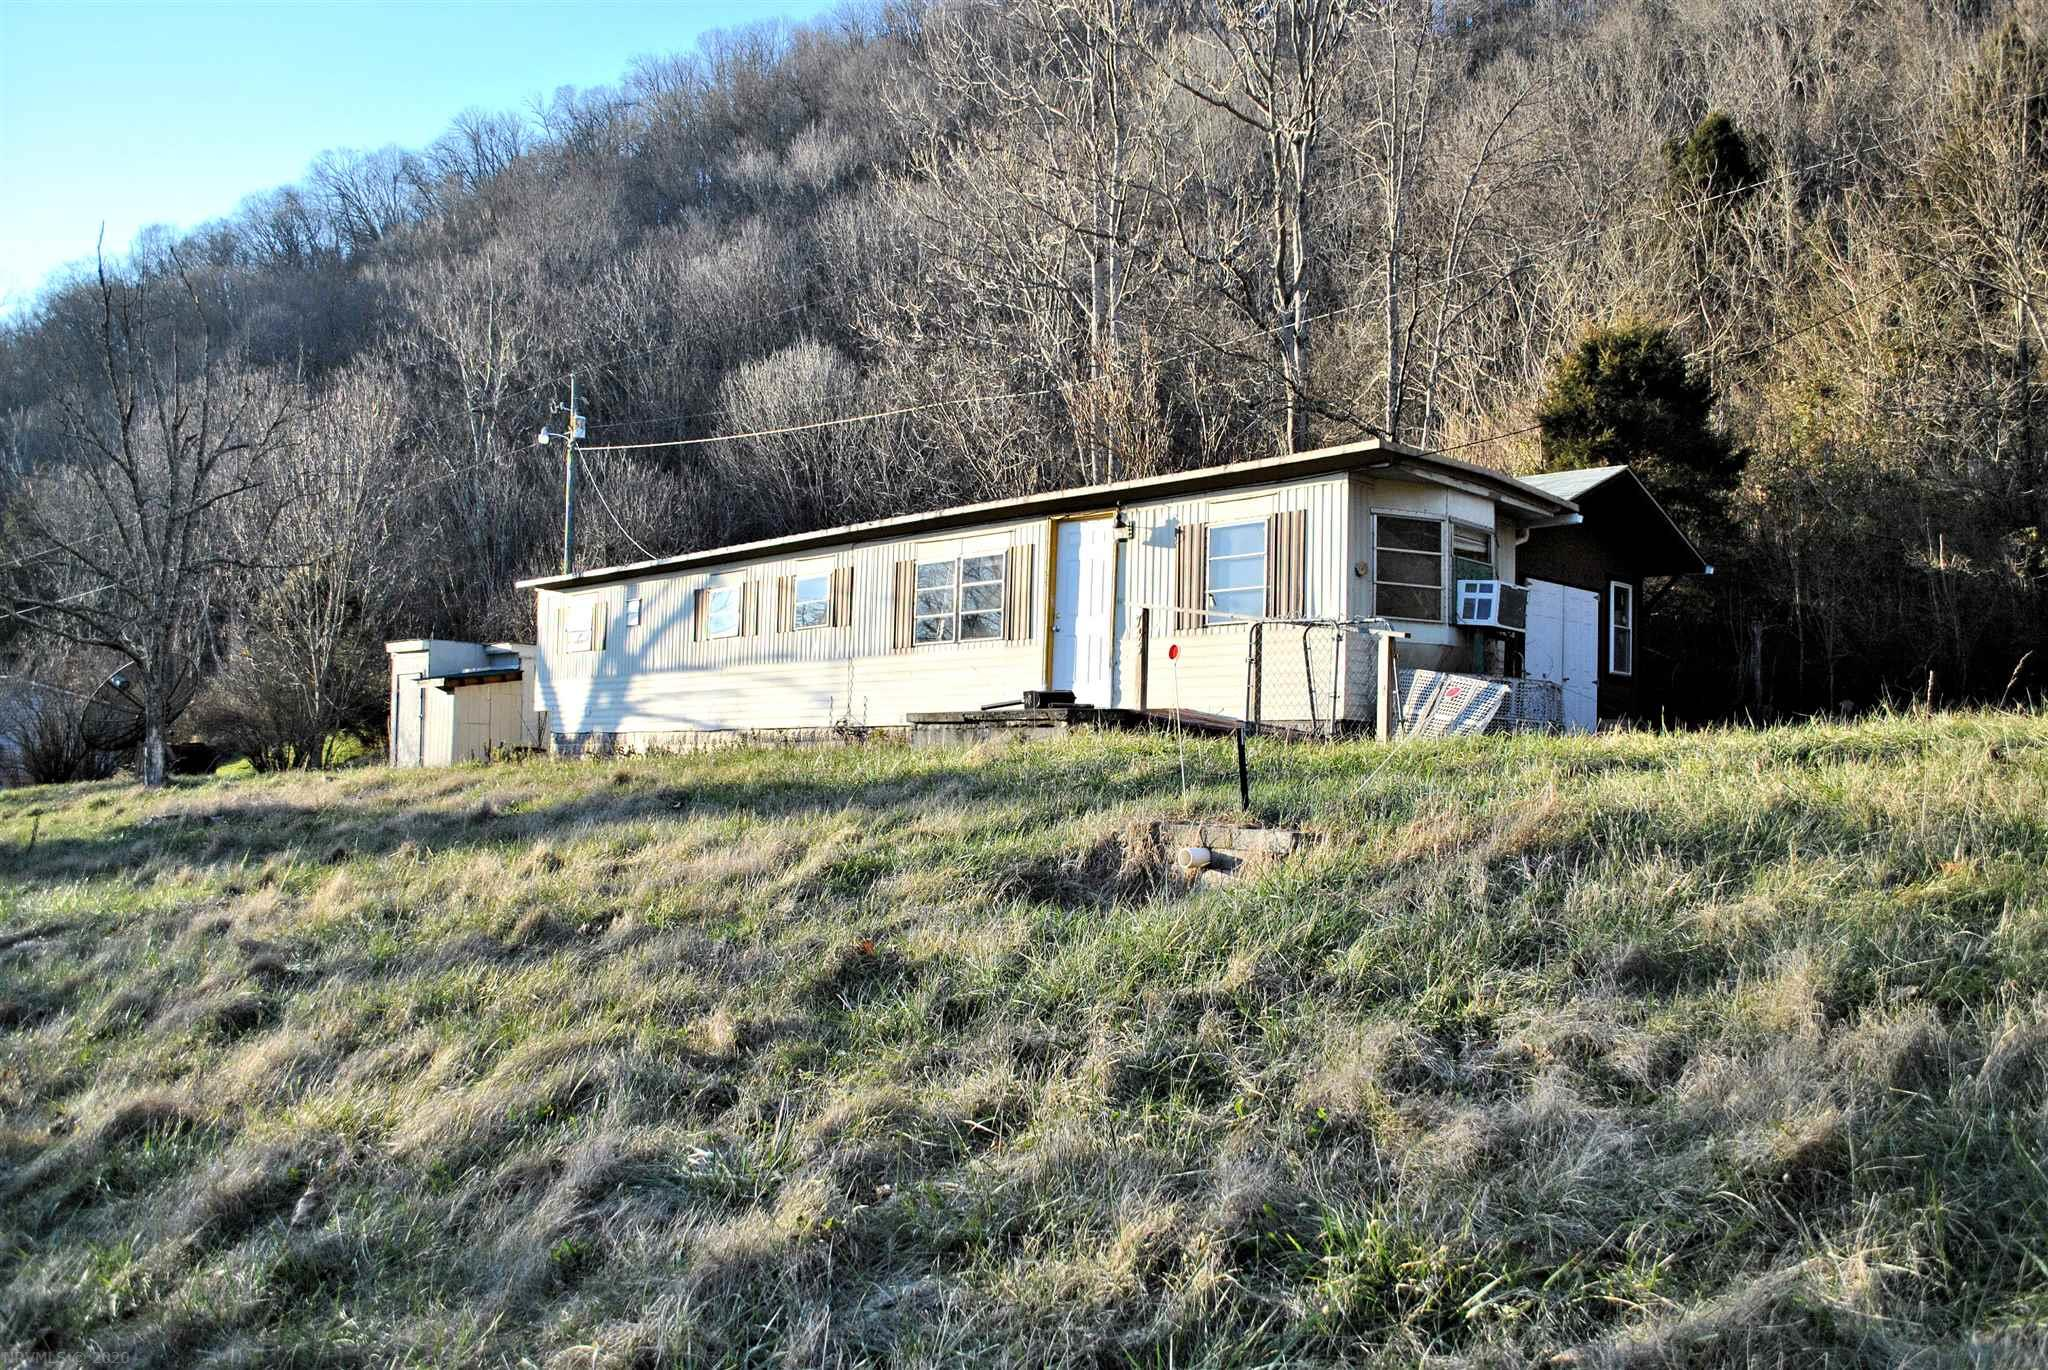 Here is a great opportunity to Buy your own property within 15 minutes to Virginia Tech! There is a well, septic, mobile home andlarge 24x14 storage shed already in place with room to expand!